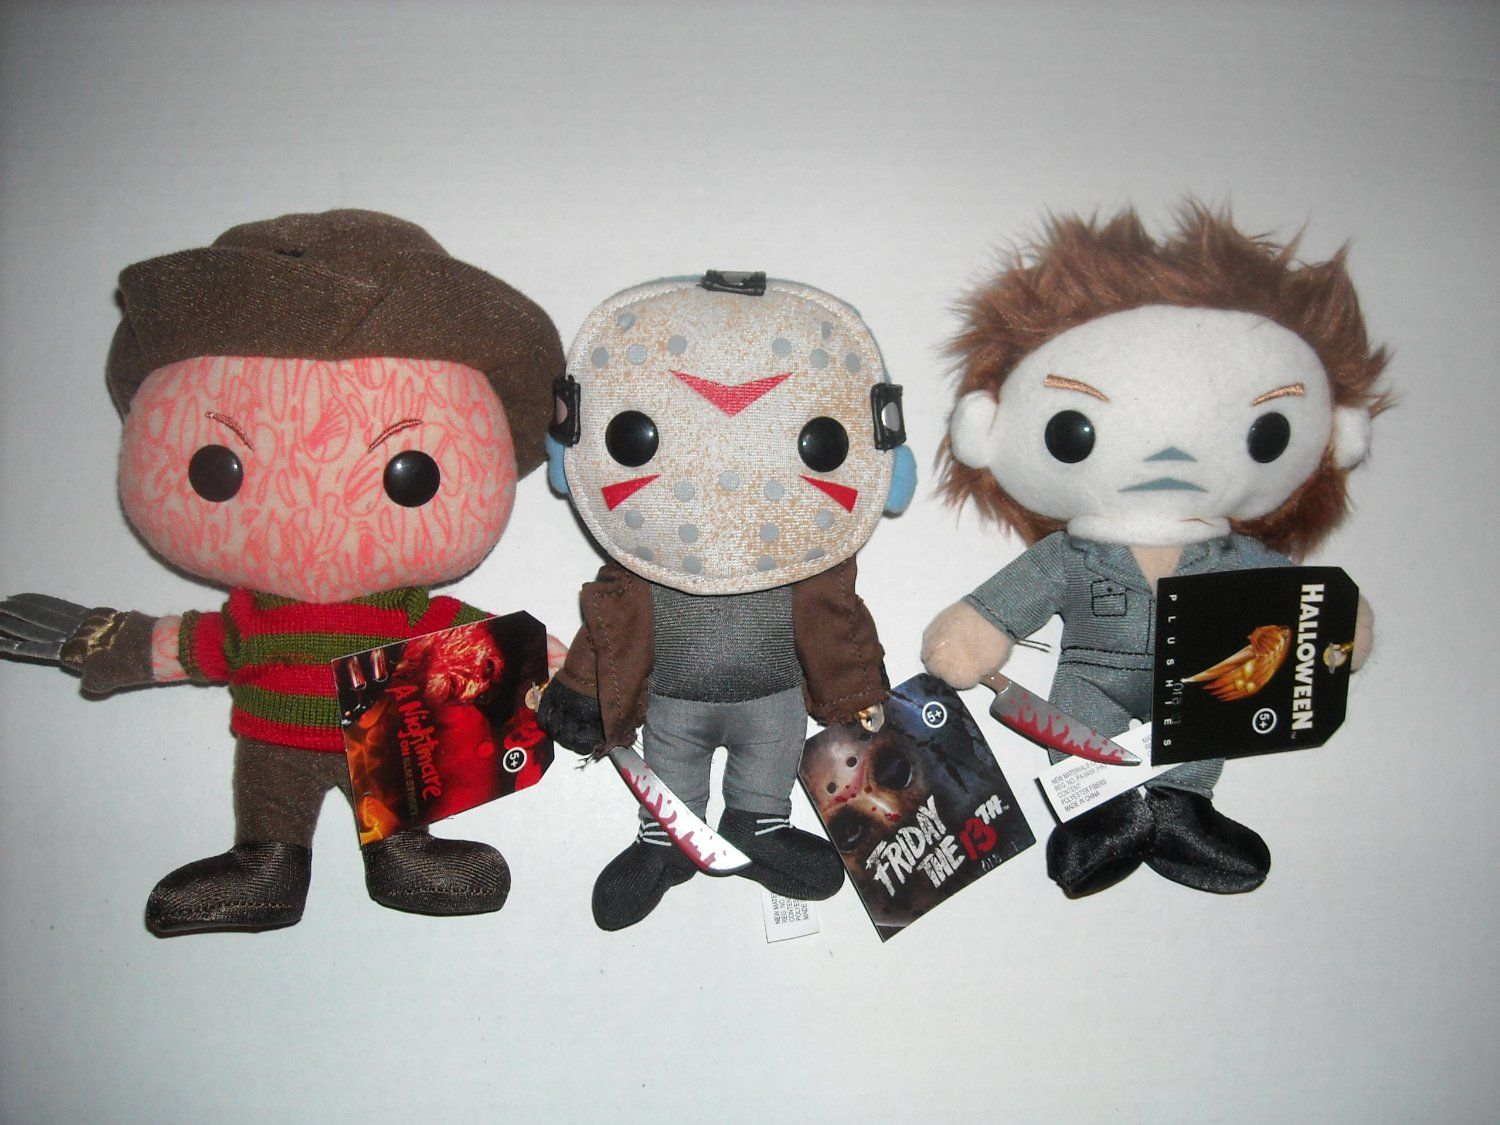 Complete Set of 3 Funko Modern Horror Movie